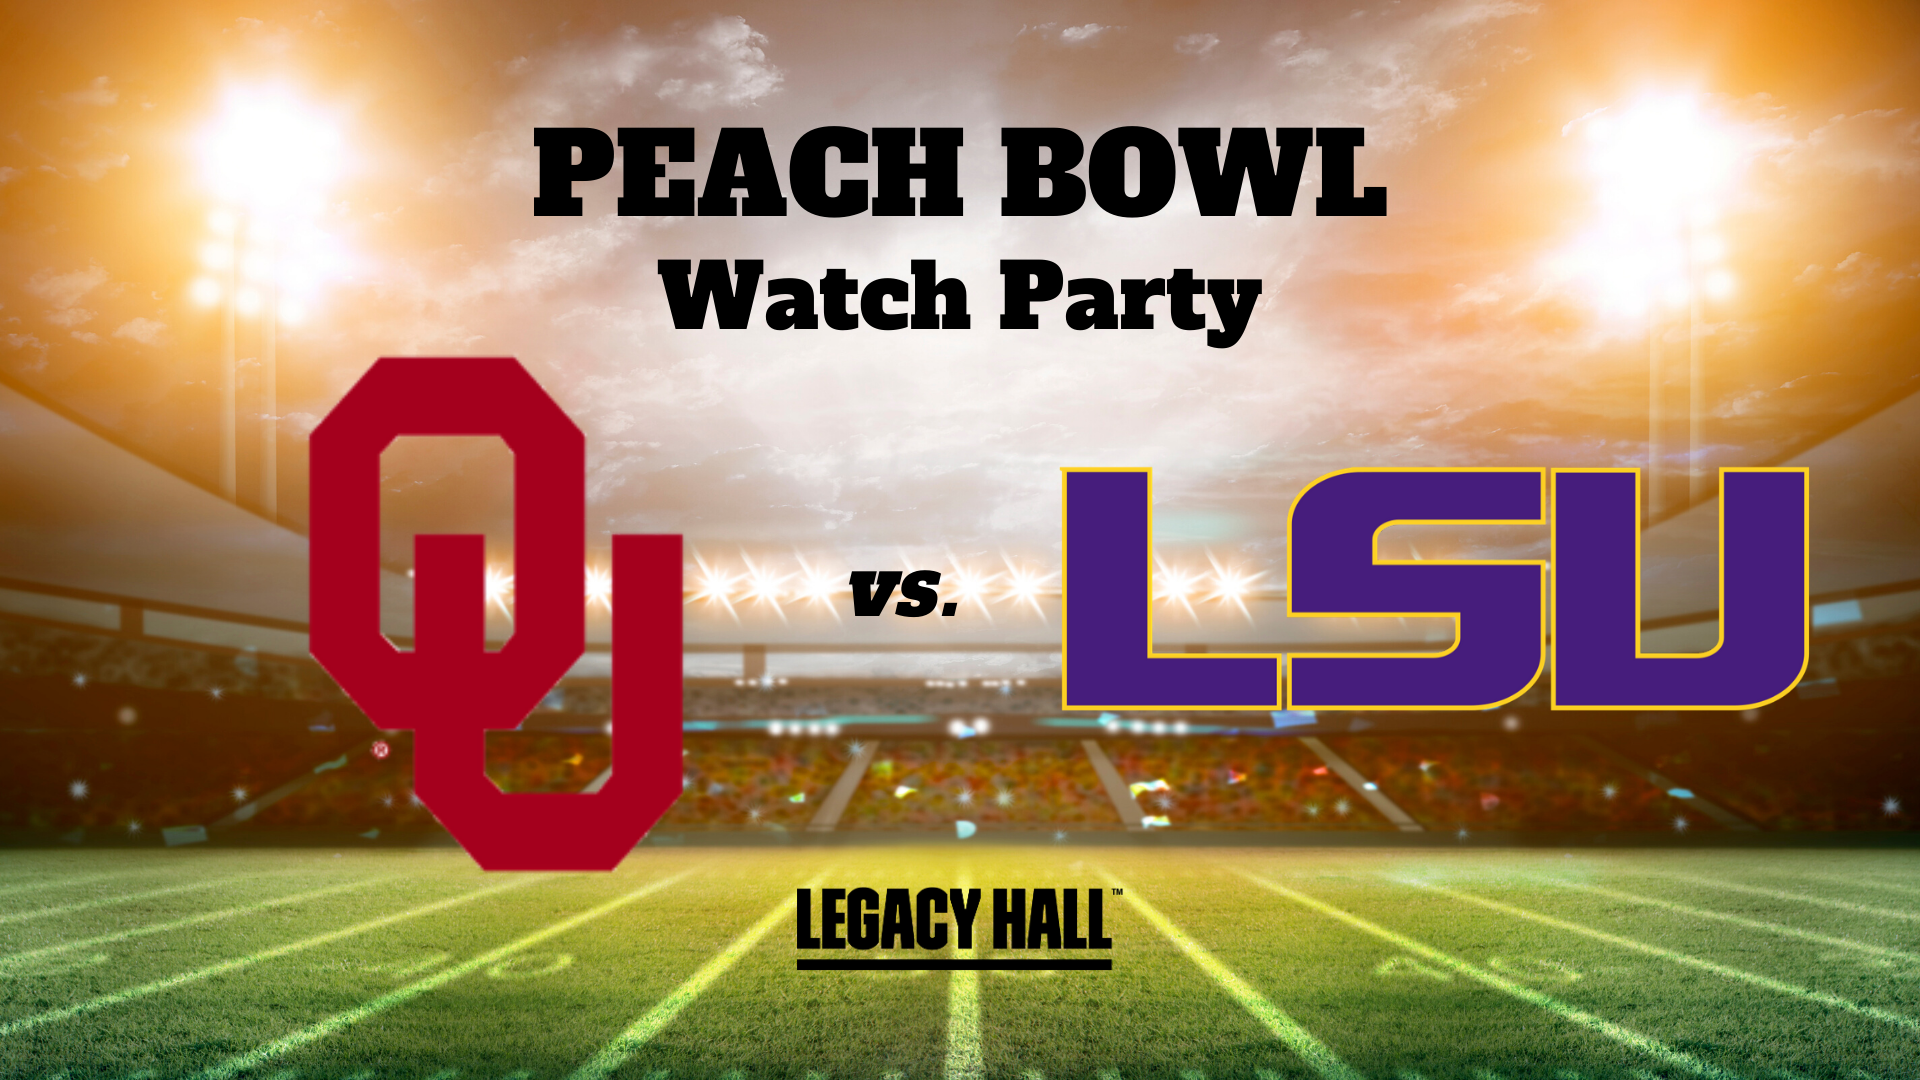 Peach Bowl Watch Party - hero